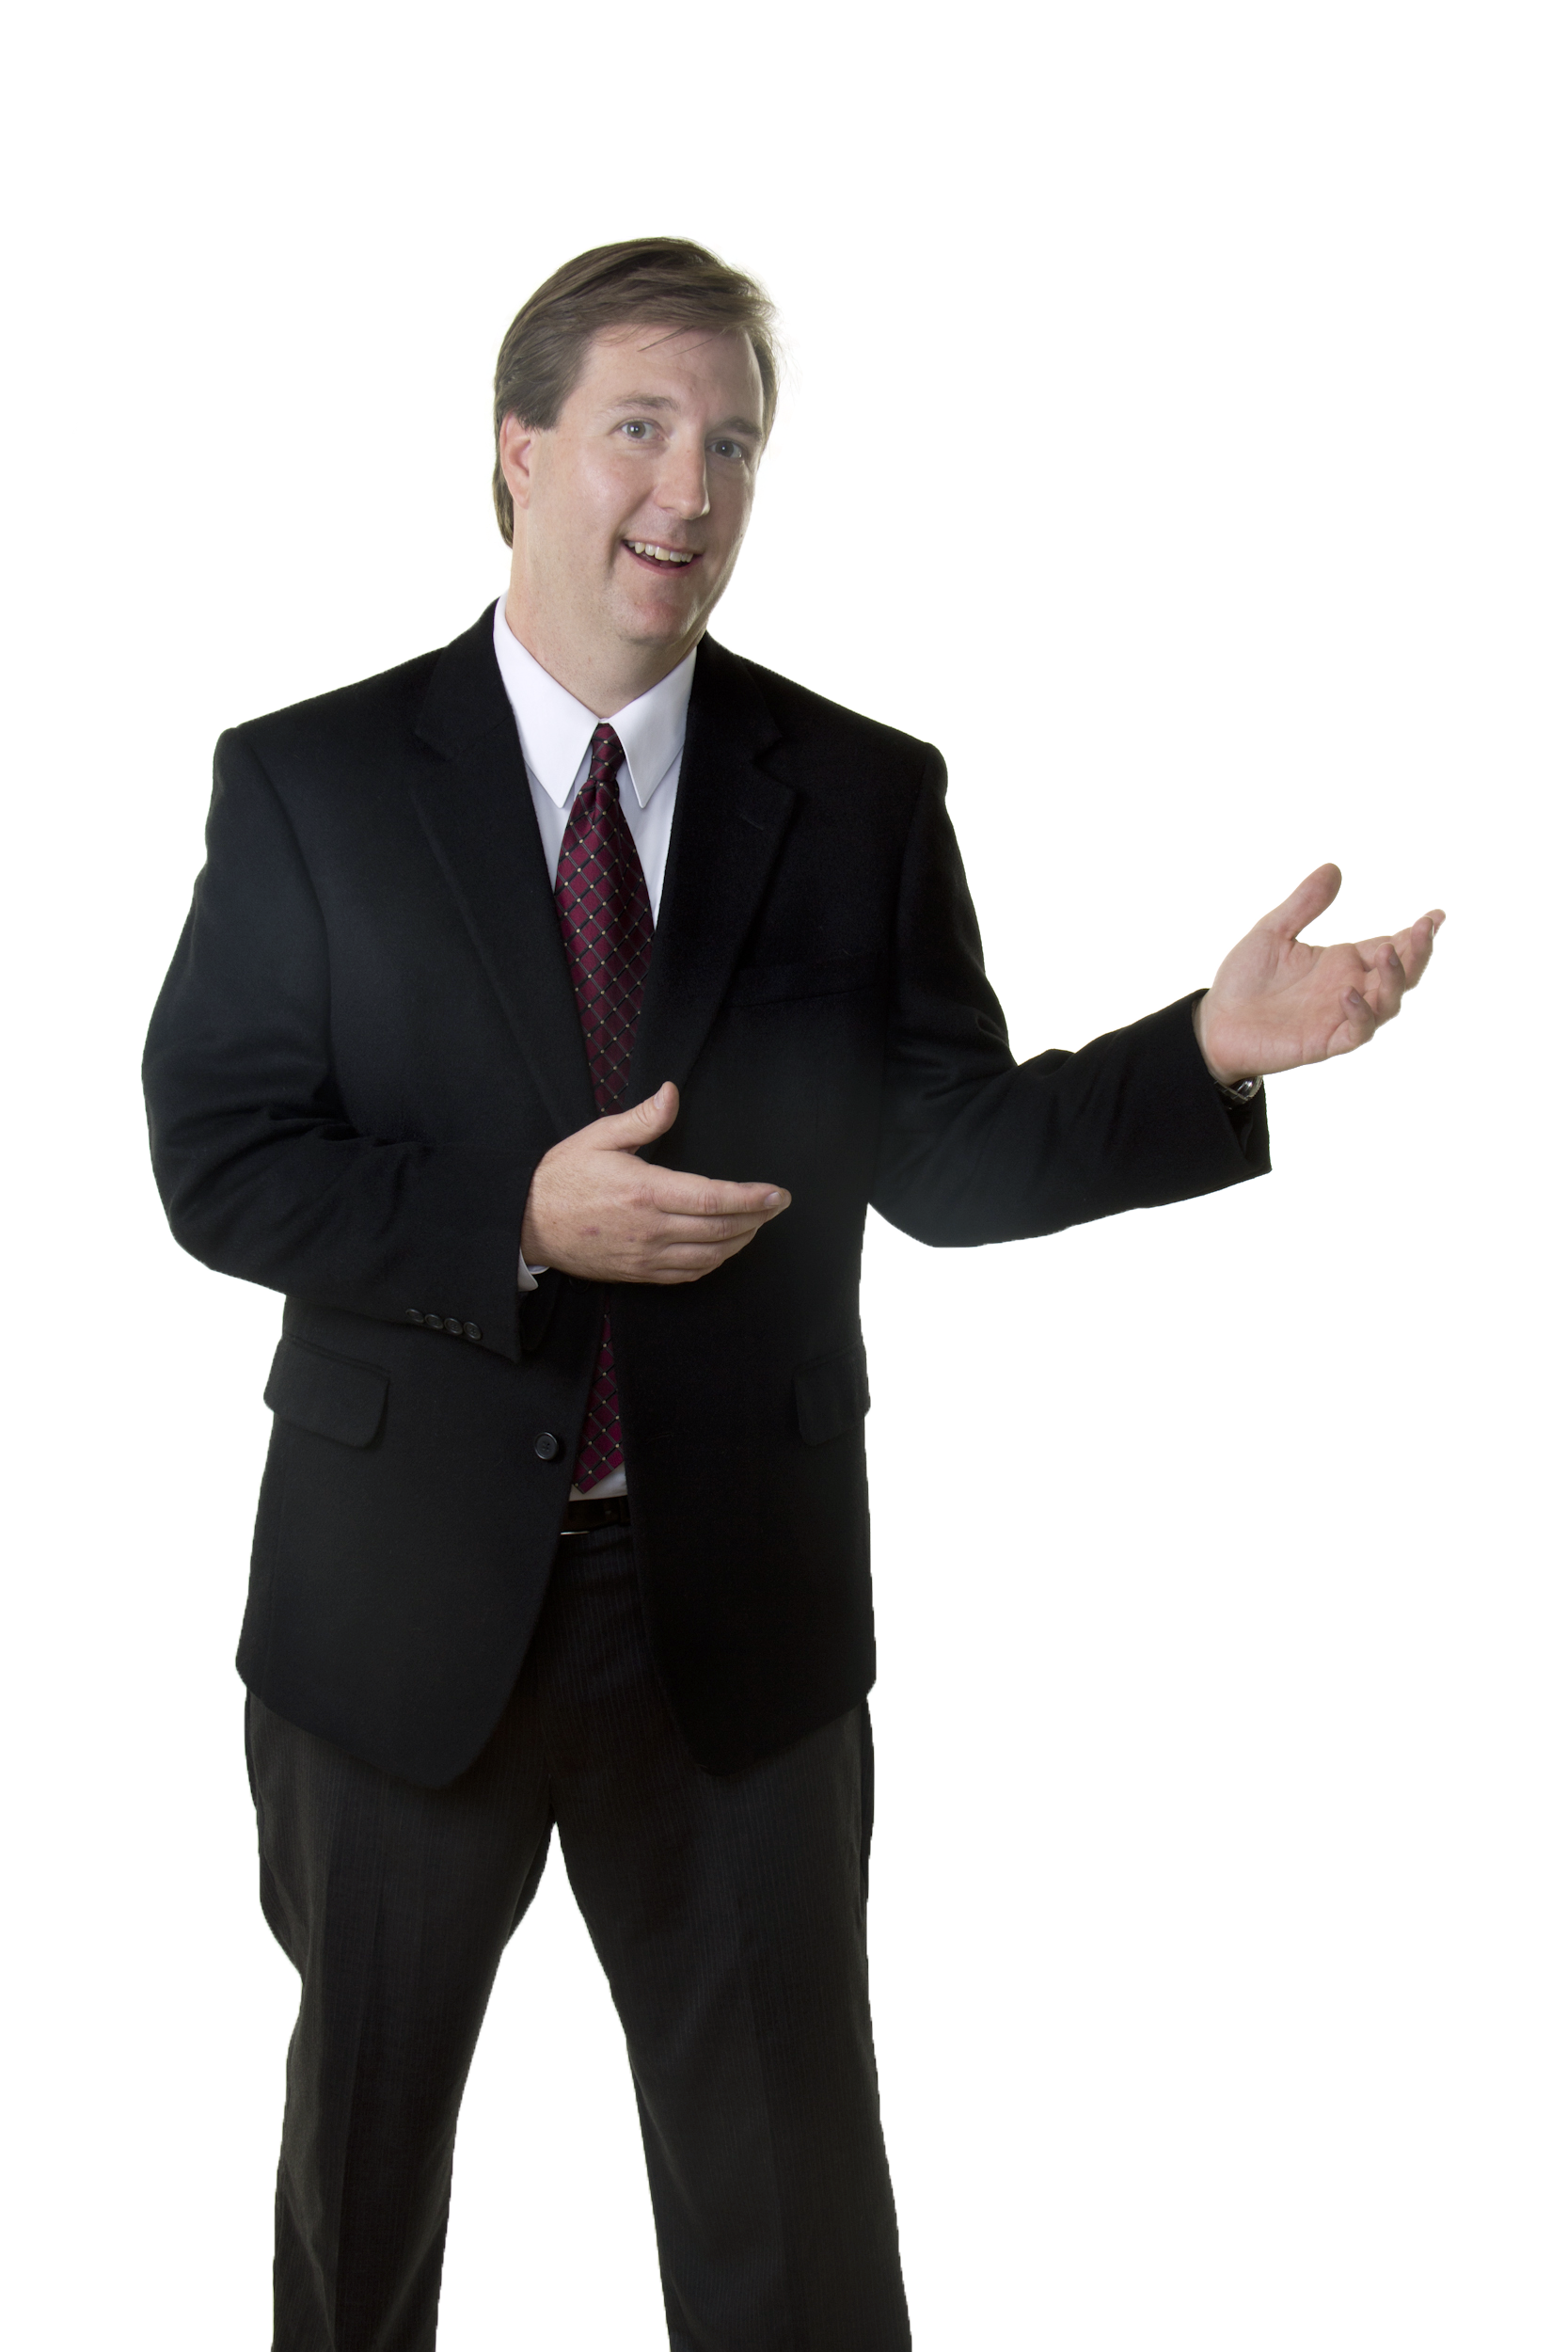 Manager clipart professional man. Free photo businessman one